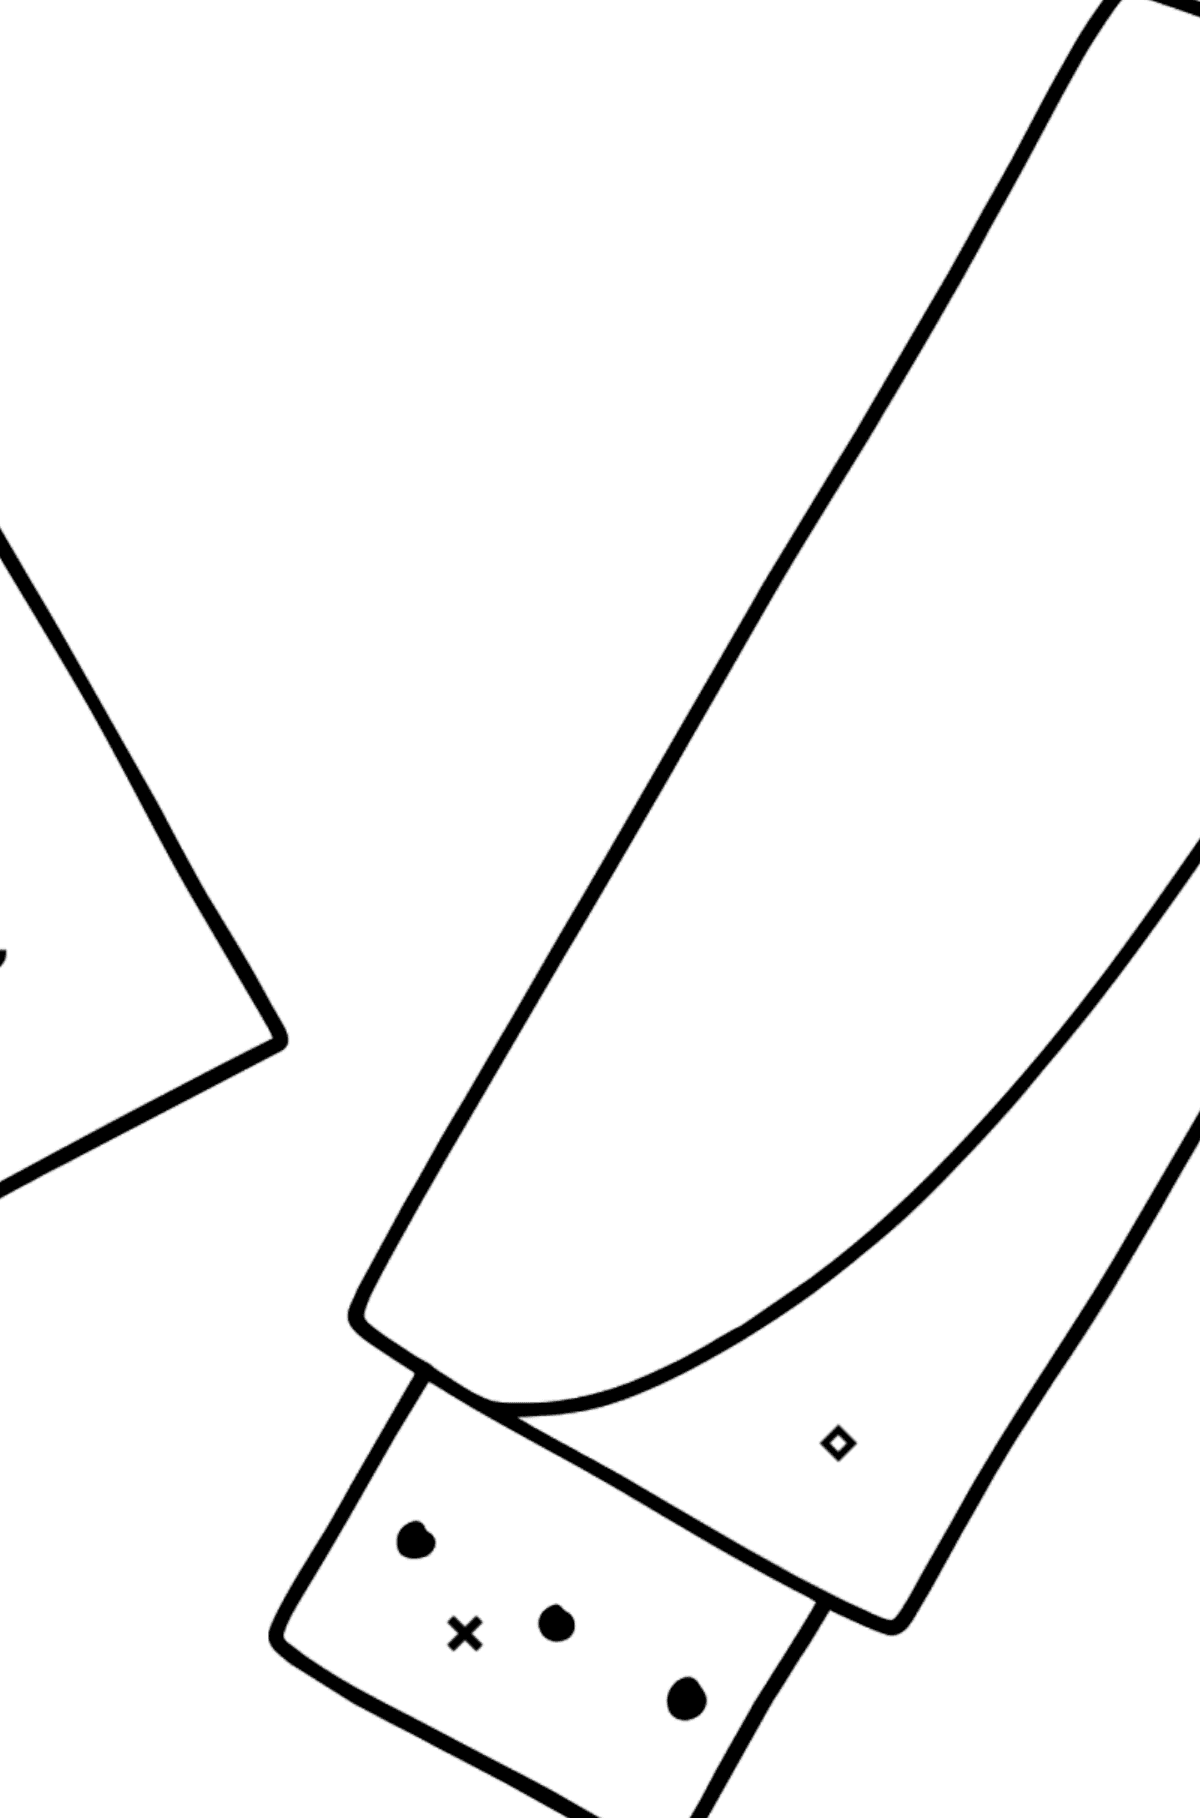 Flash Drive coloring page - Coloring by Symbols and Geometric Shapes for Kids